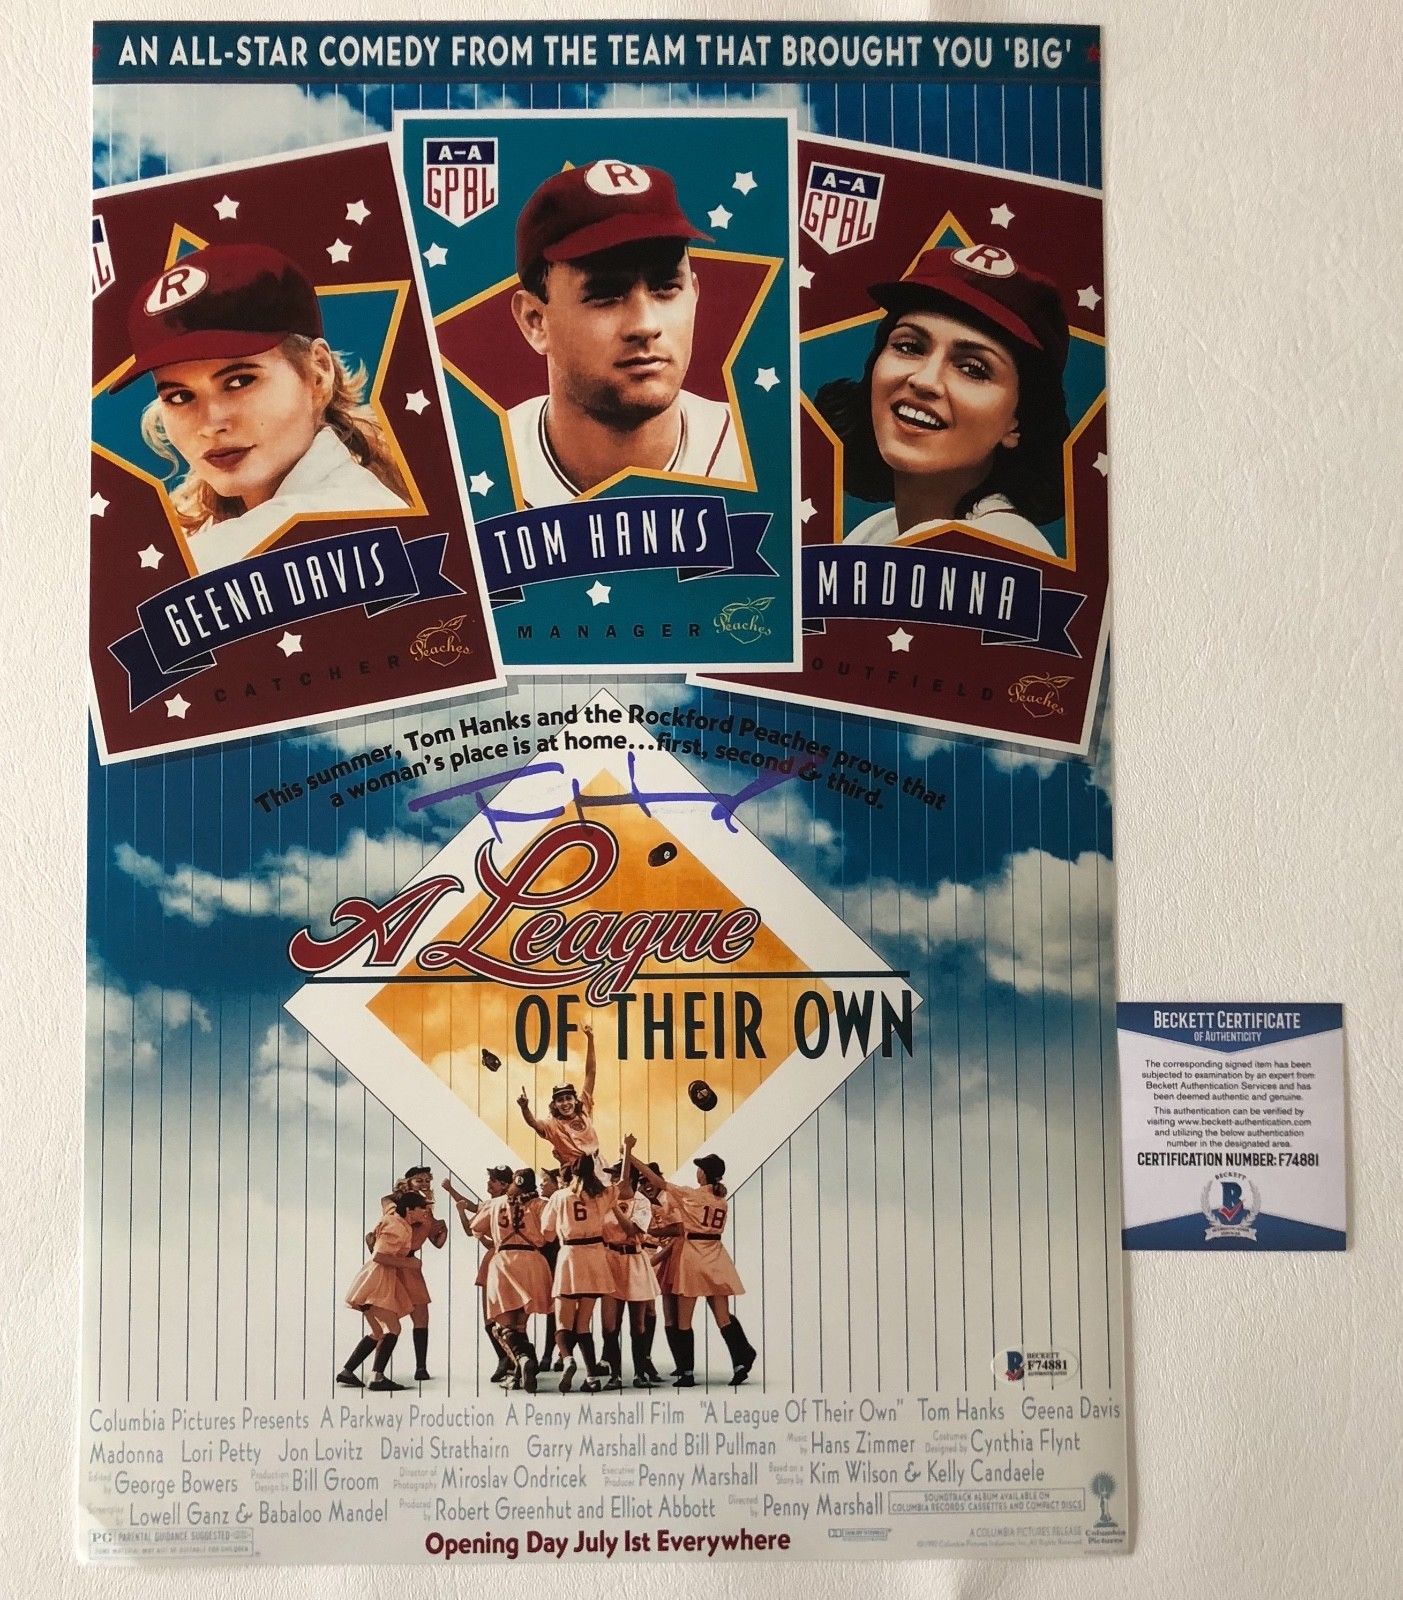 Tom Hanks Signed Auto A League Of Their Own 12x18 Mini Movie